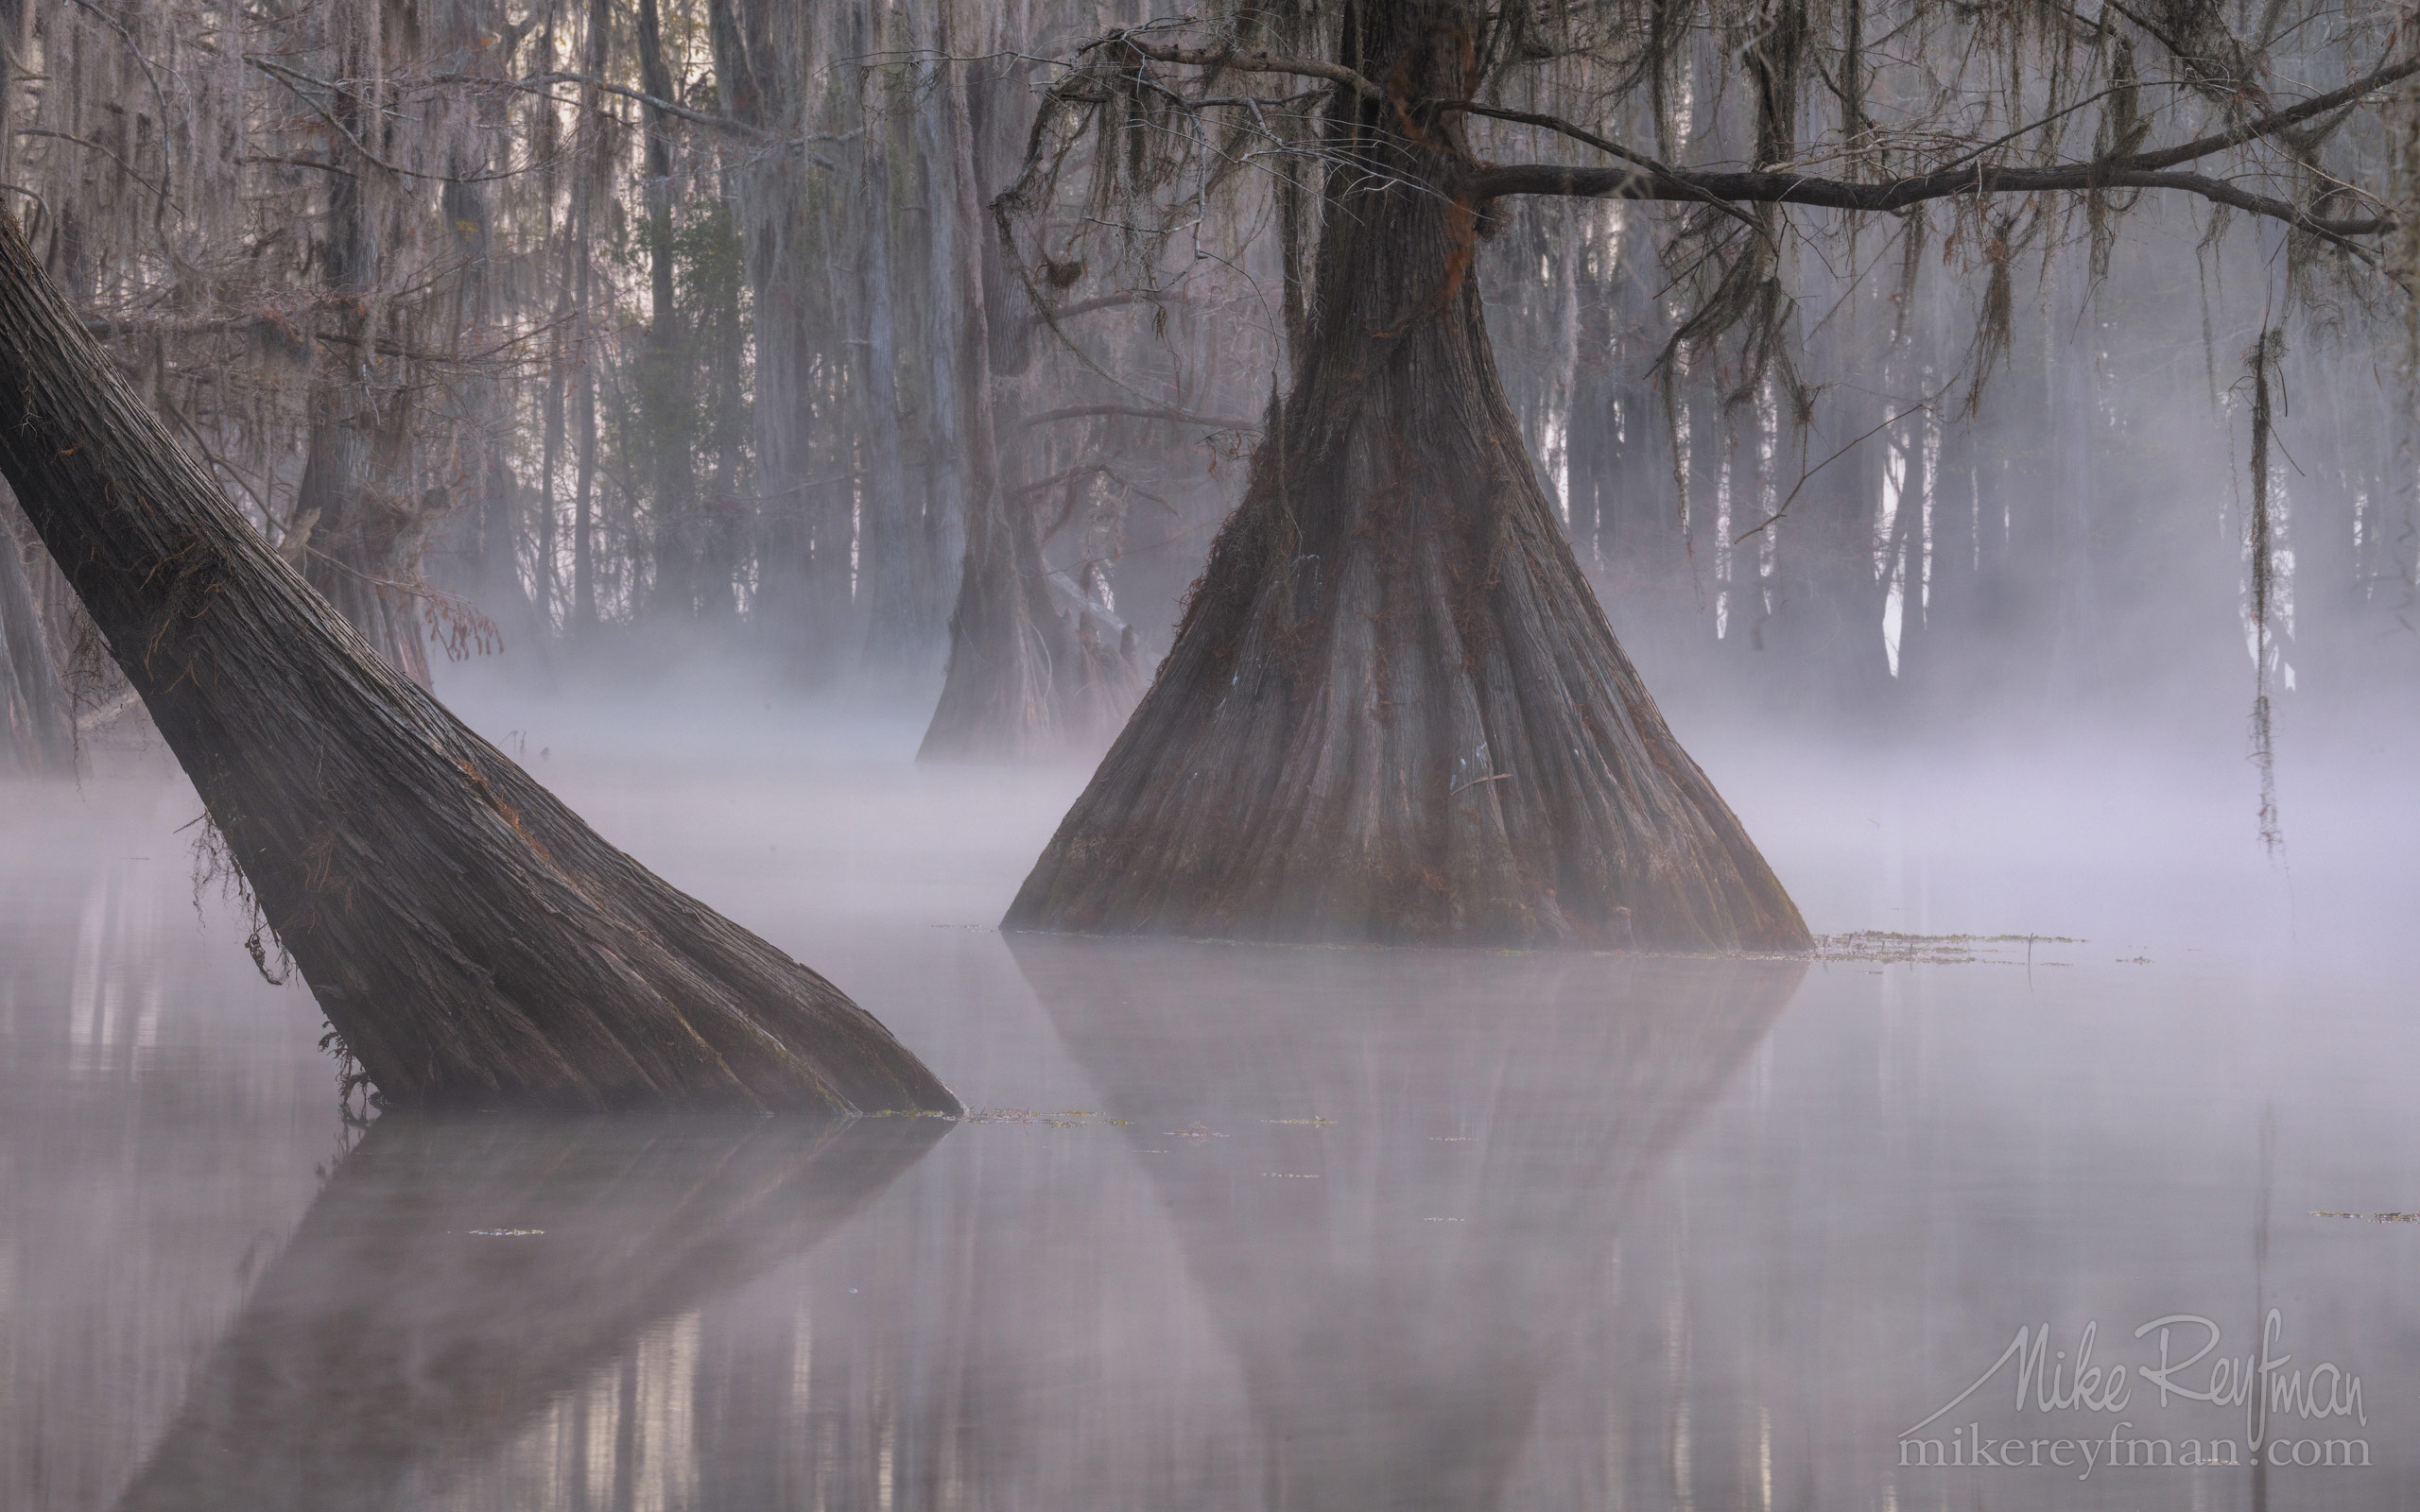 Bald Cypress trees in the swamp. Foggy morning on Caddo Lake, Texas, US 015-LT1-50A3282.jpg - Bold Cypress and Tupelo Trees in the swamps of Atchafalaya River Basin. Caddo, Martin and Fousse Lakes. Texas/Louisiana, USA. - Mike Reyfman Photography